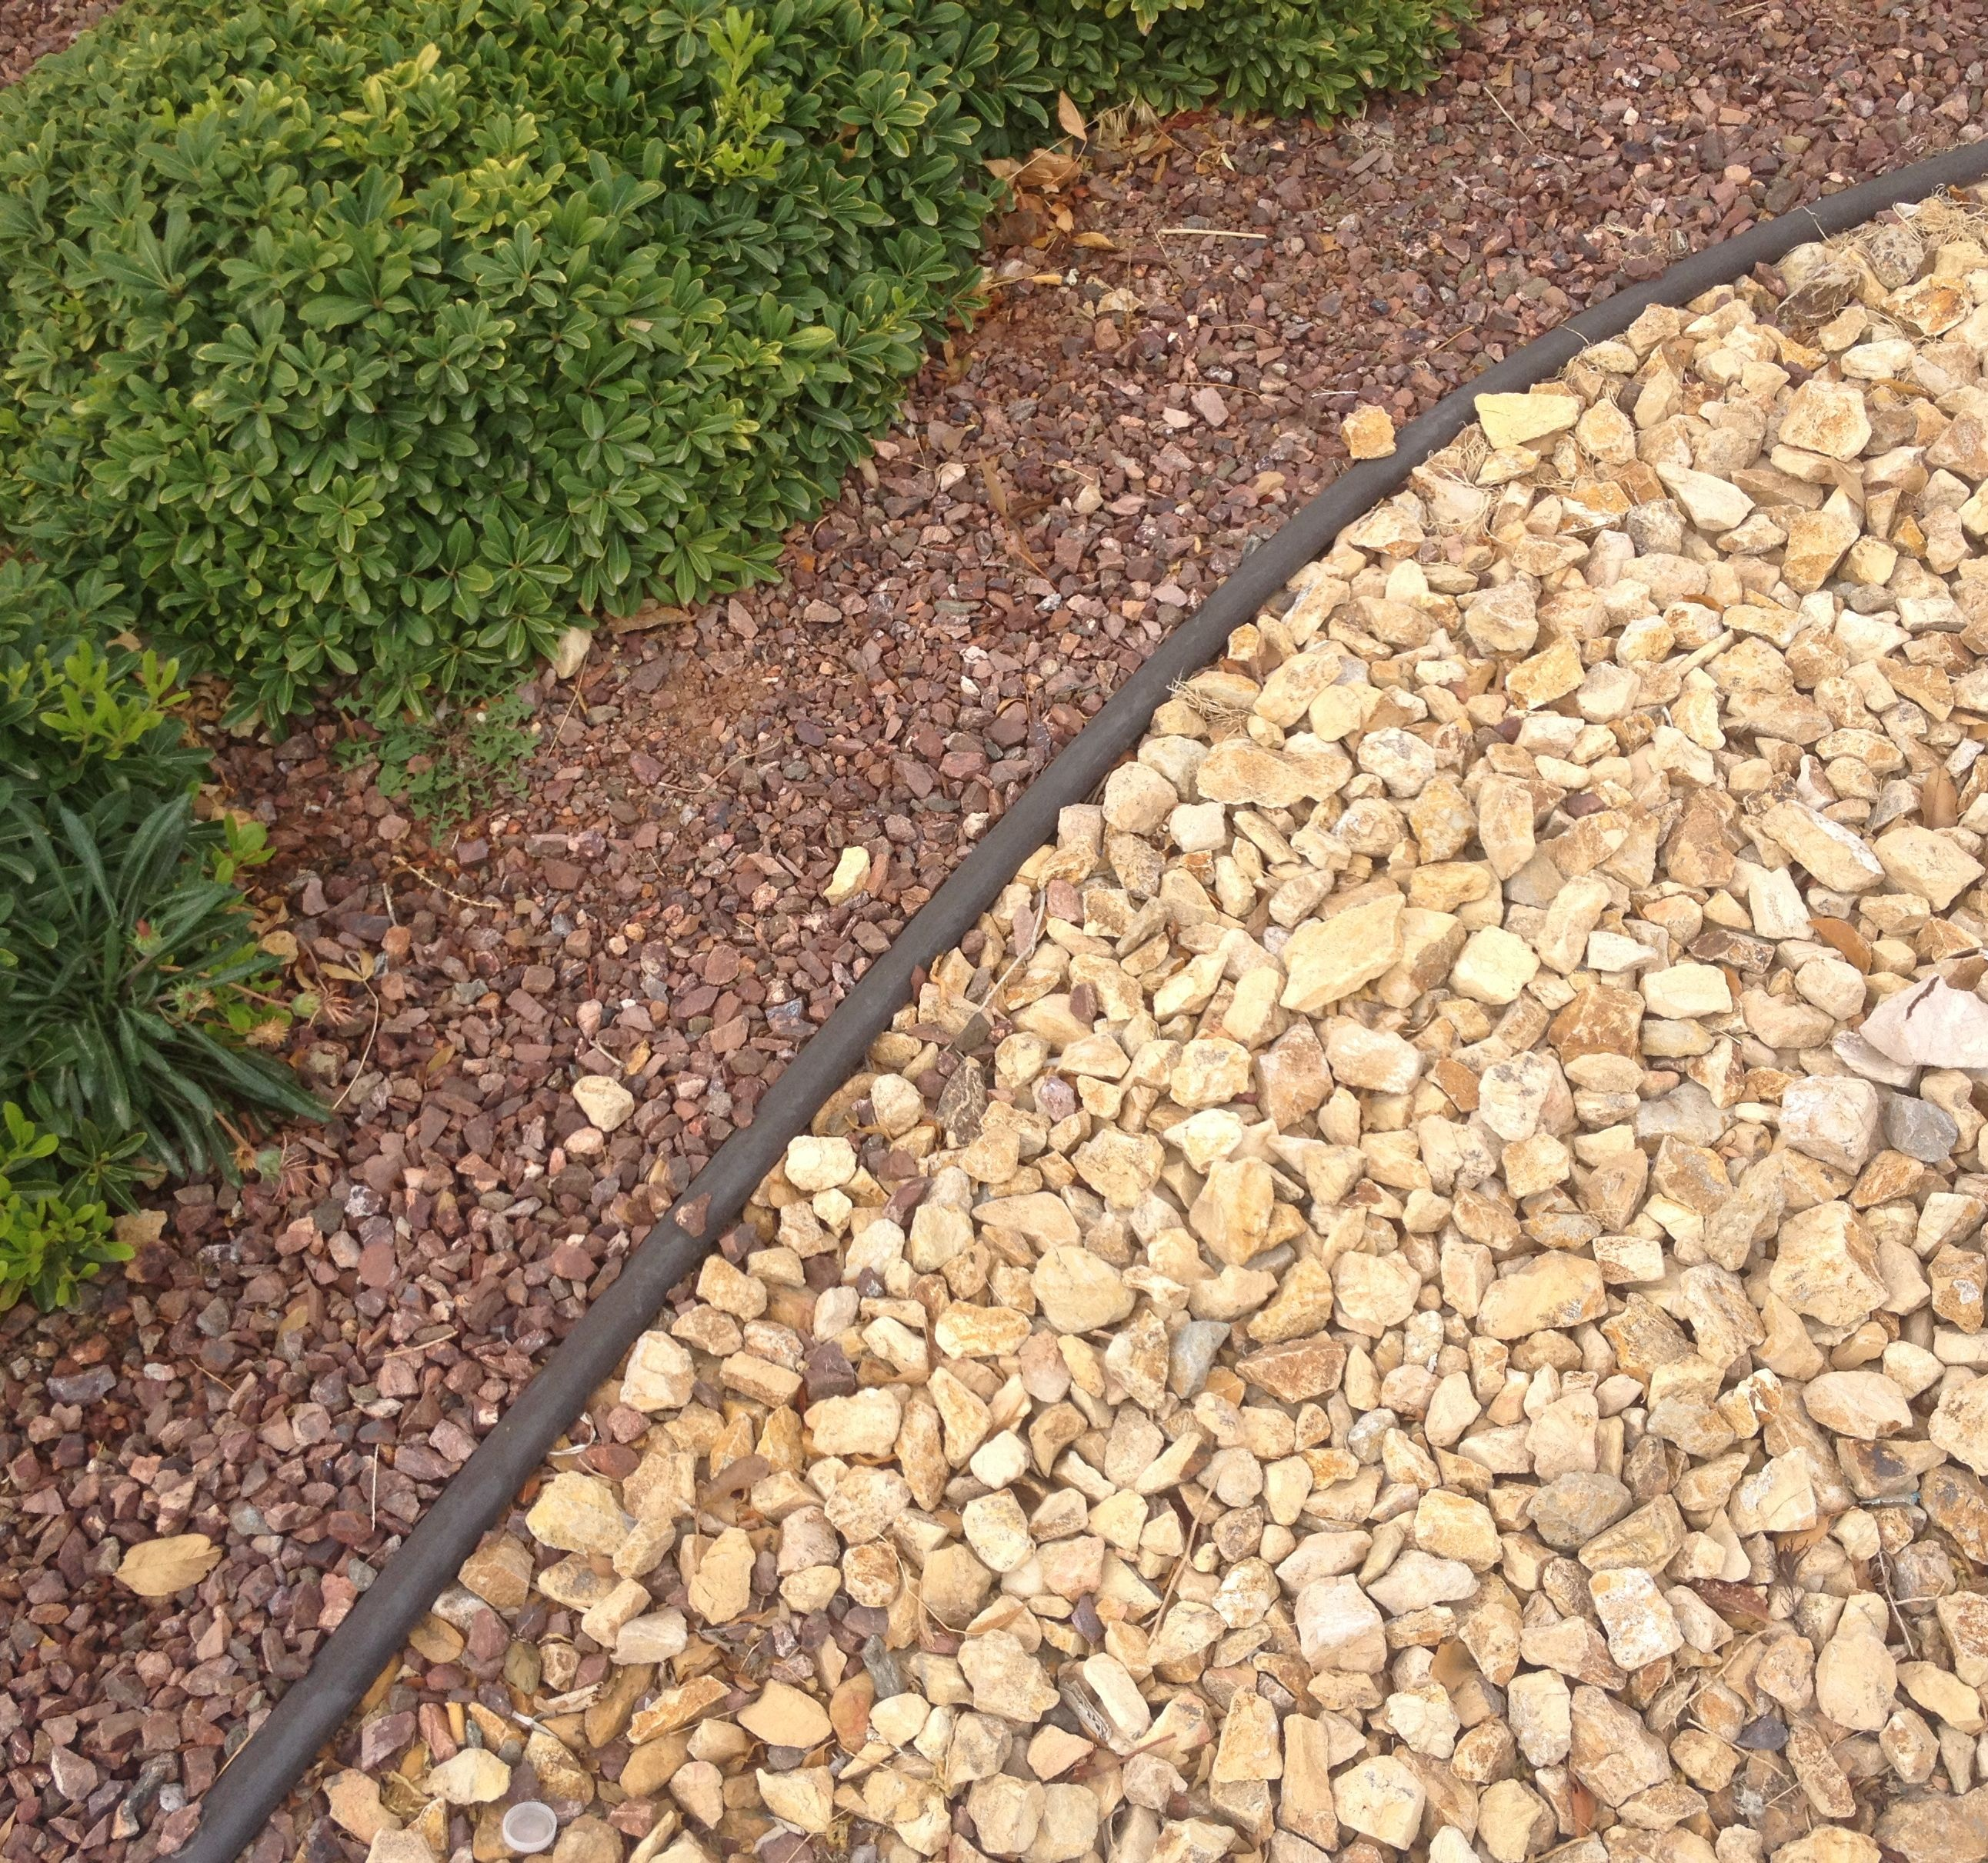 California Gold Gravel 2 And Wine Red Gravel 3 4 The Two Important Features Of This Photo Are Landscaping With Rocks Shed Landscaping Gravel Landscaping